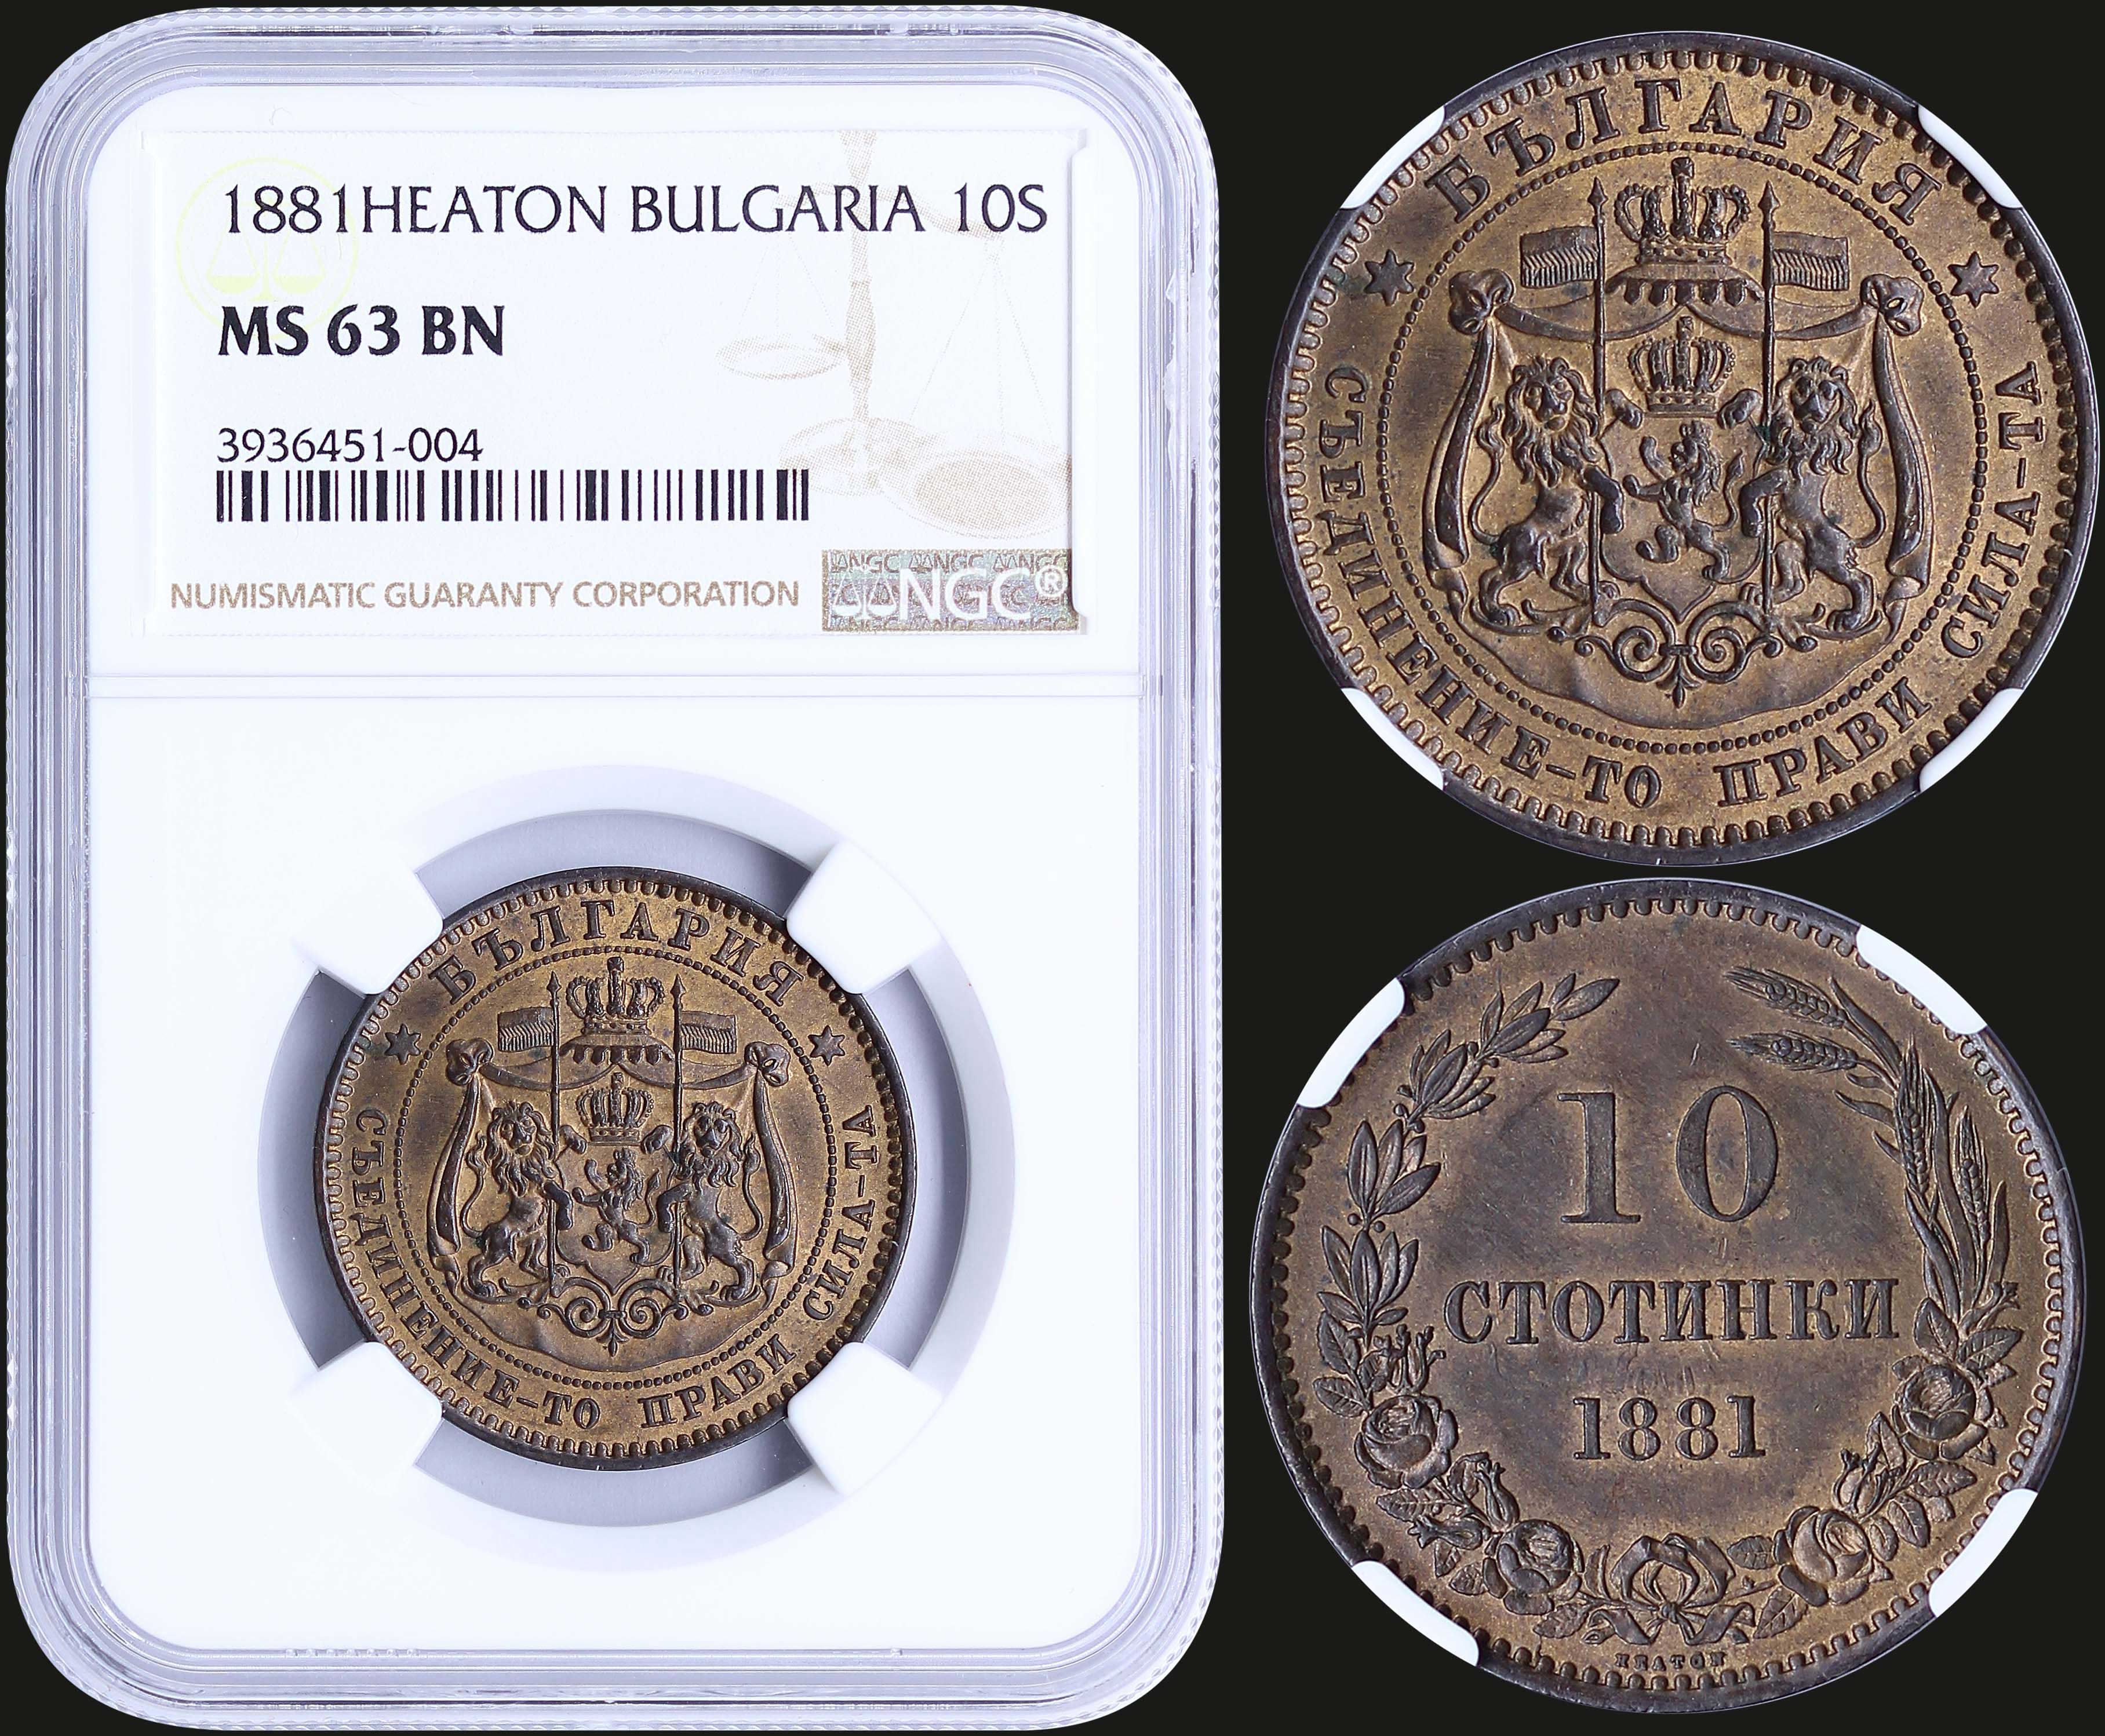 Lot 6689 - -  COINS & TOKENS COINS & TOKENS OF EUROPEAN COUNTRIES -  A. Karamitsos Public & Live Internet Auction 682 (Part B) Coins, Medals & Banknotes